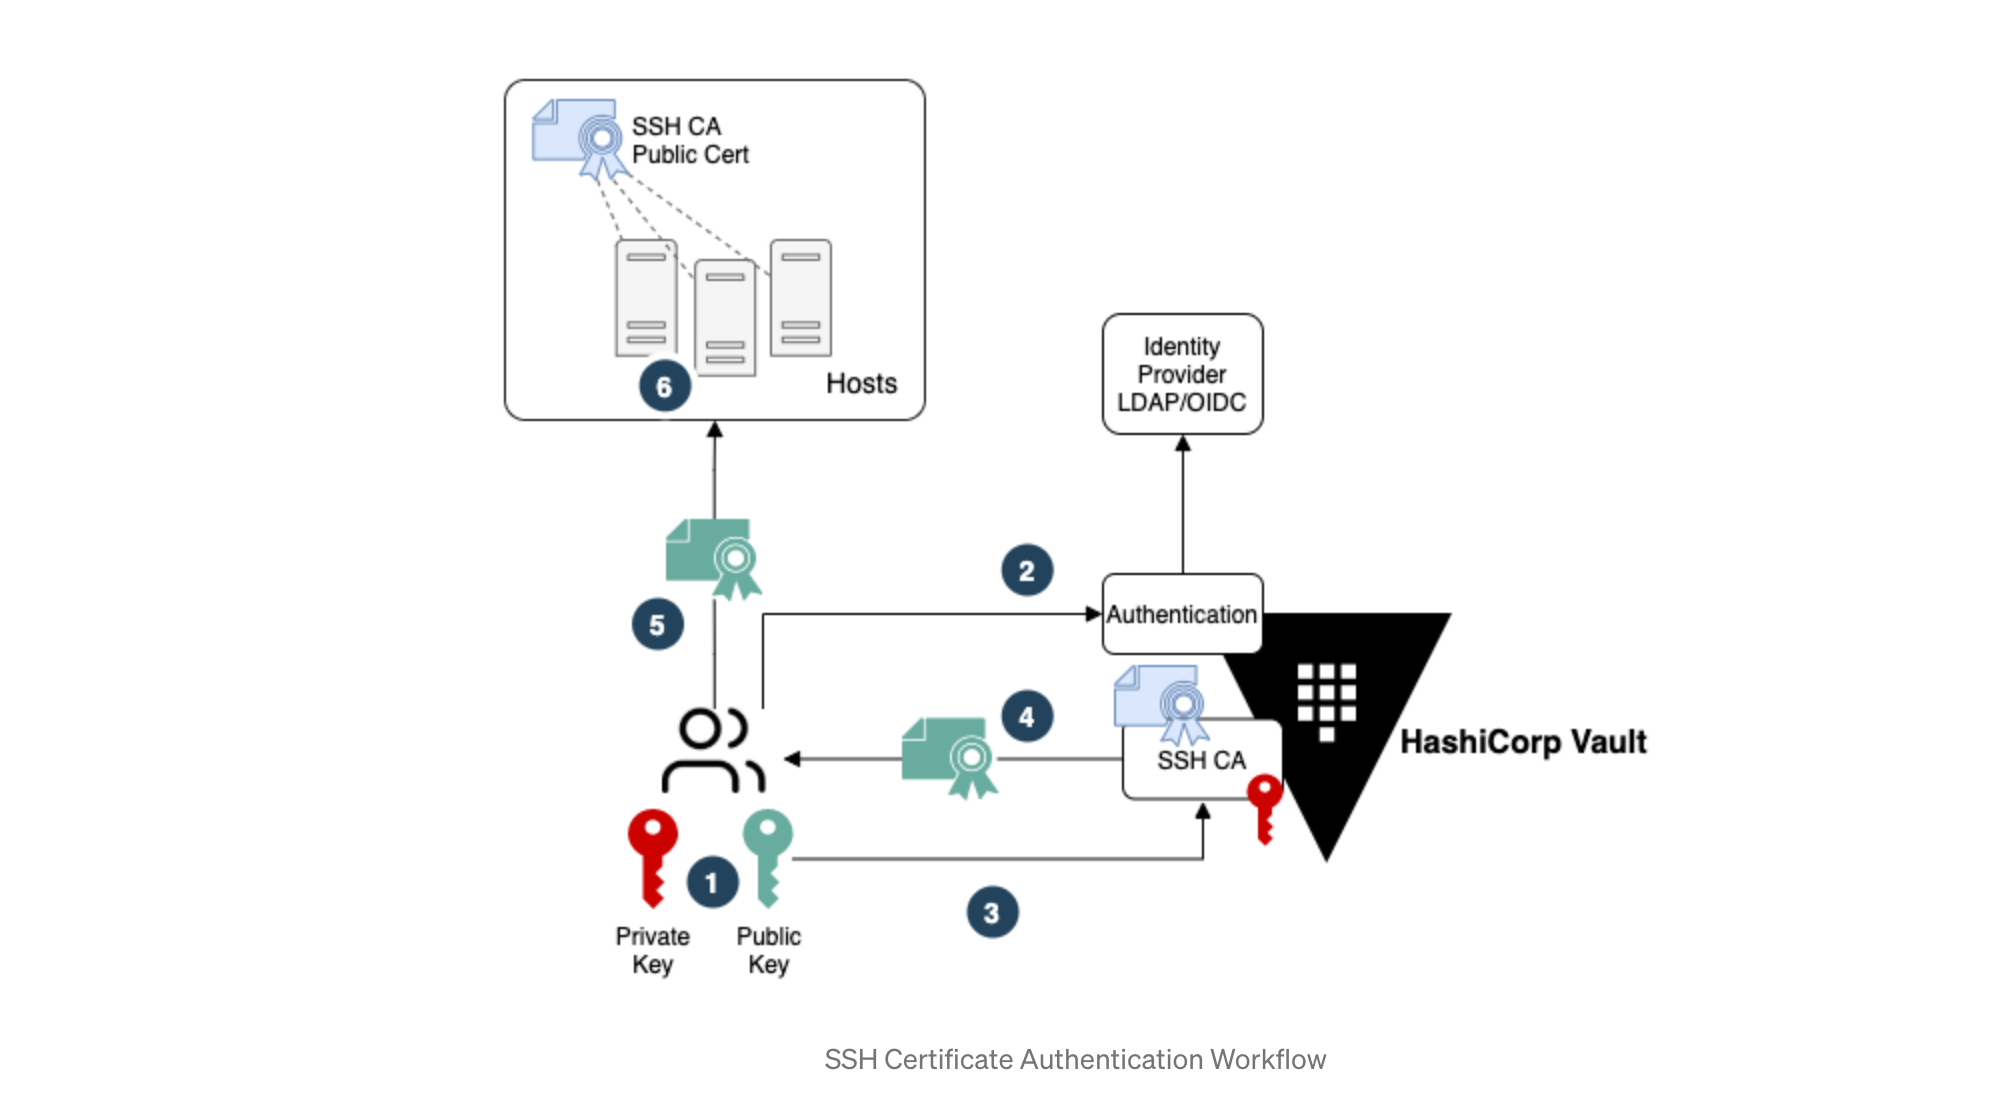 SSH Certificate Authority workflow